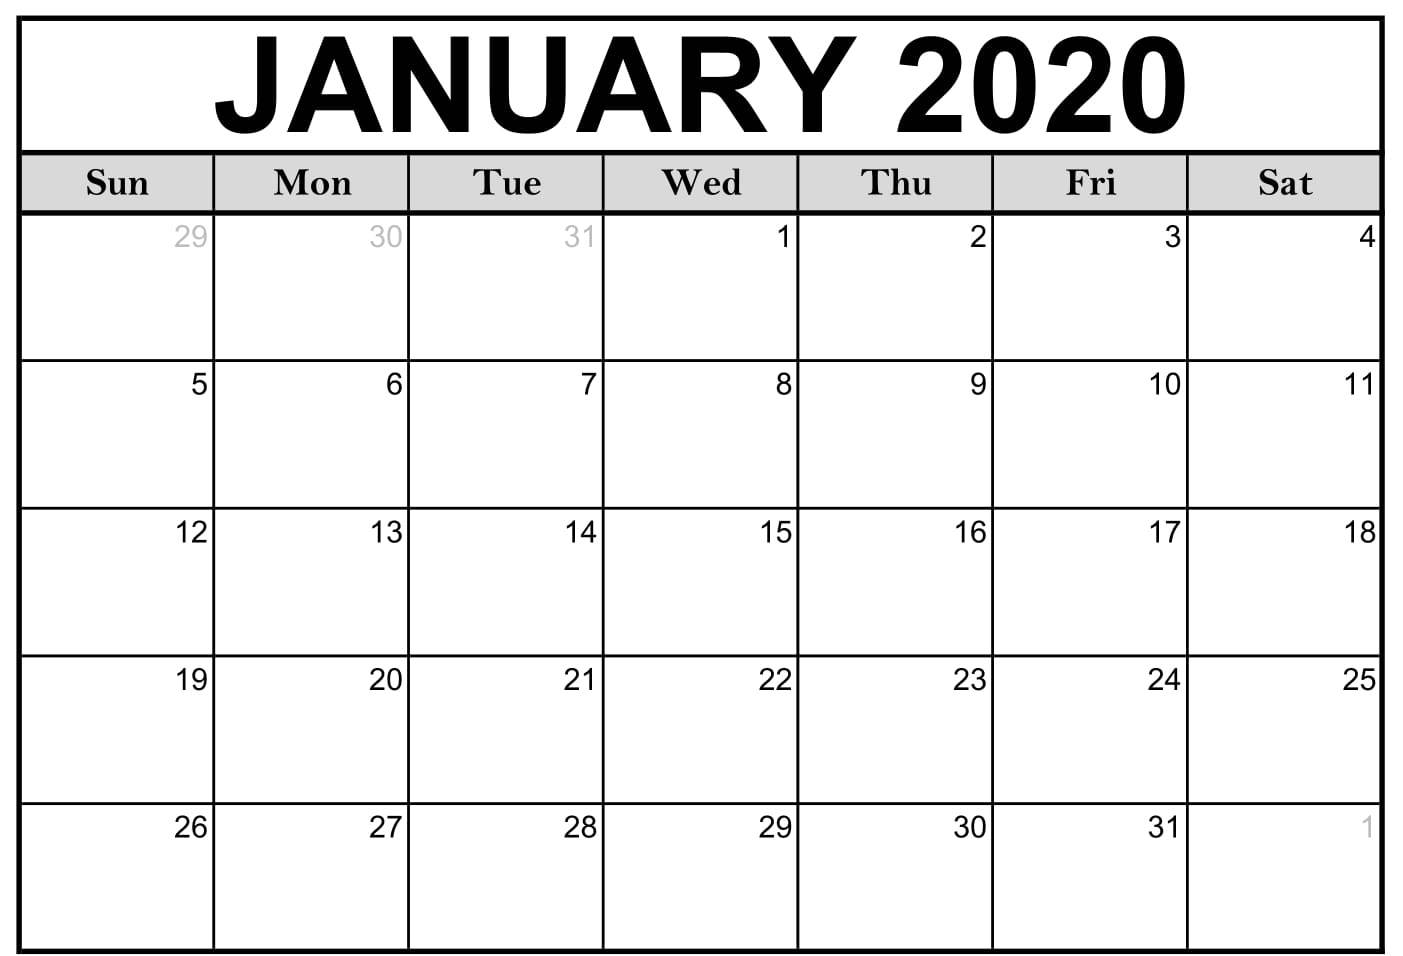 January 2020 Calendar Vertical